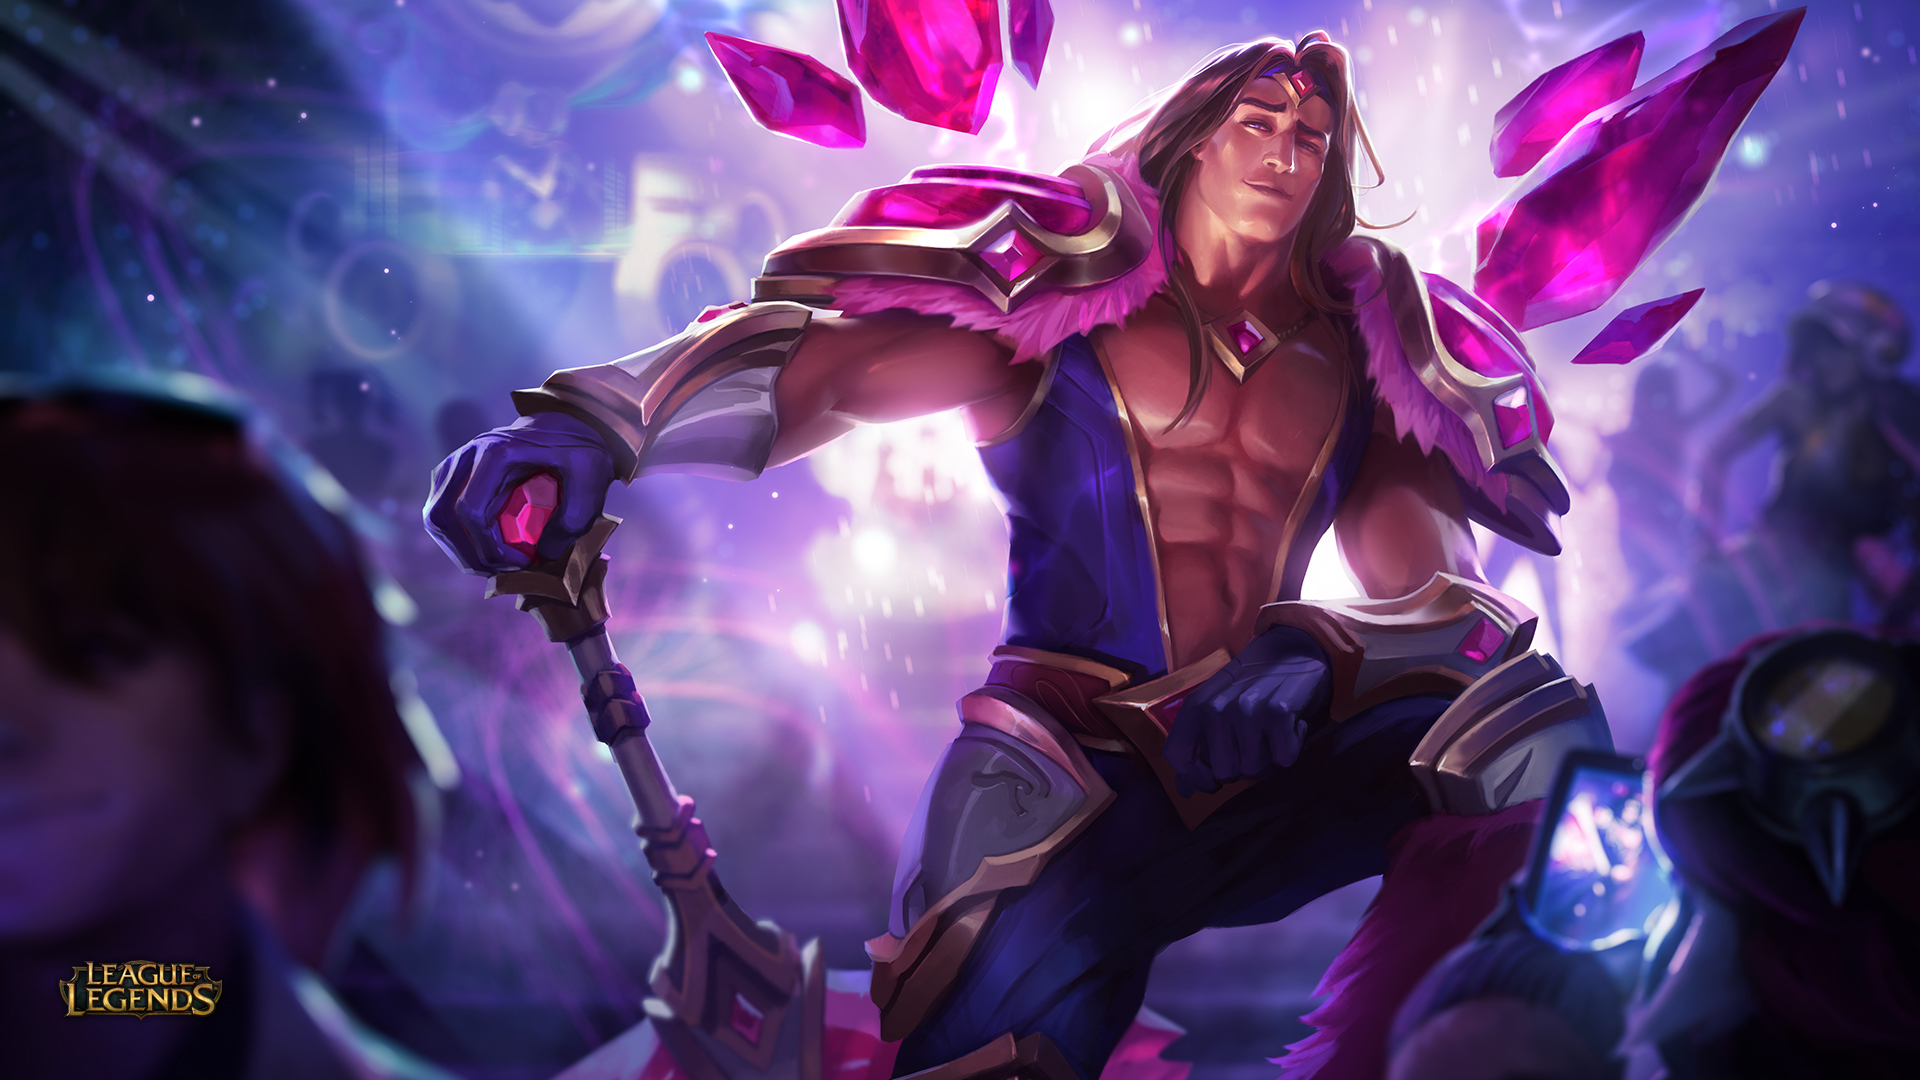 [Image: Taric_FifthAge_Splash_Wallpaper.jpg]